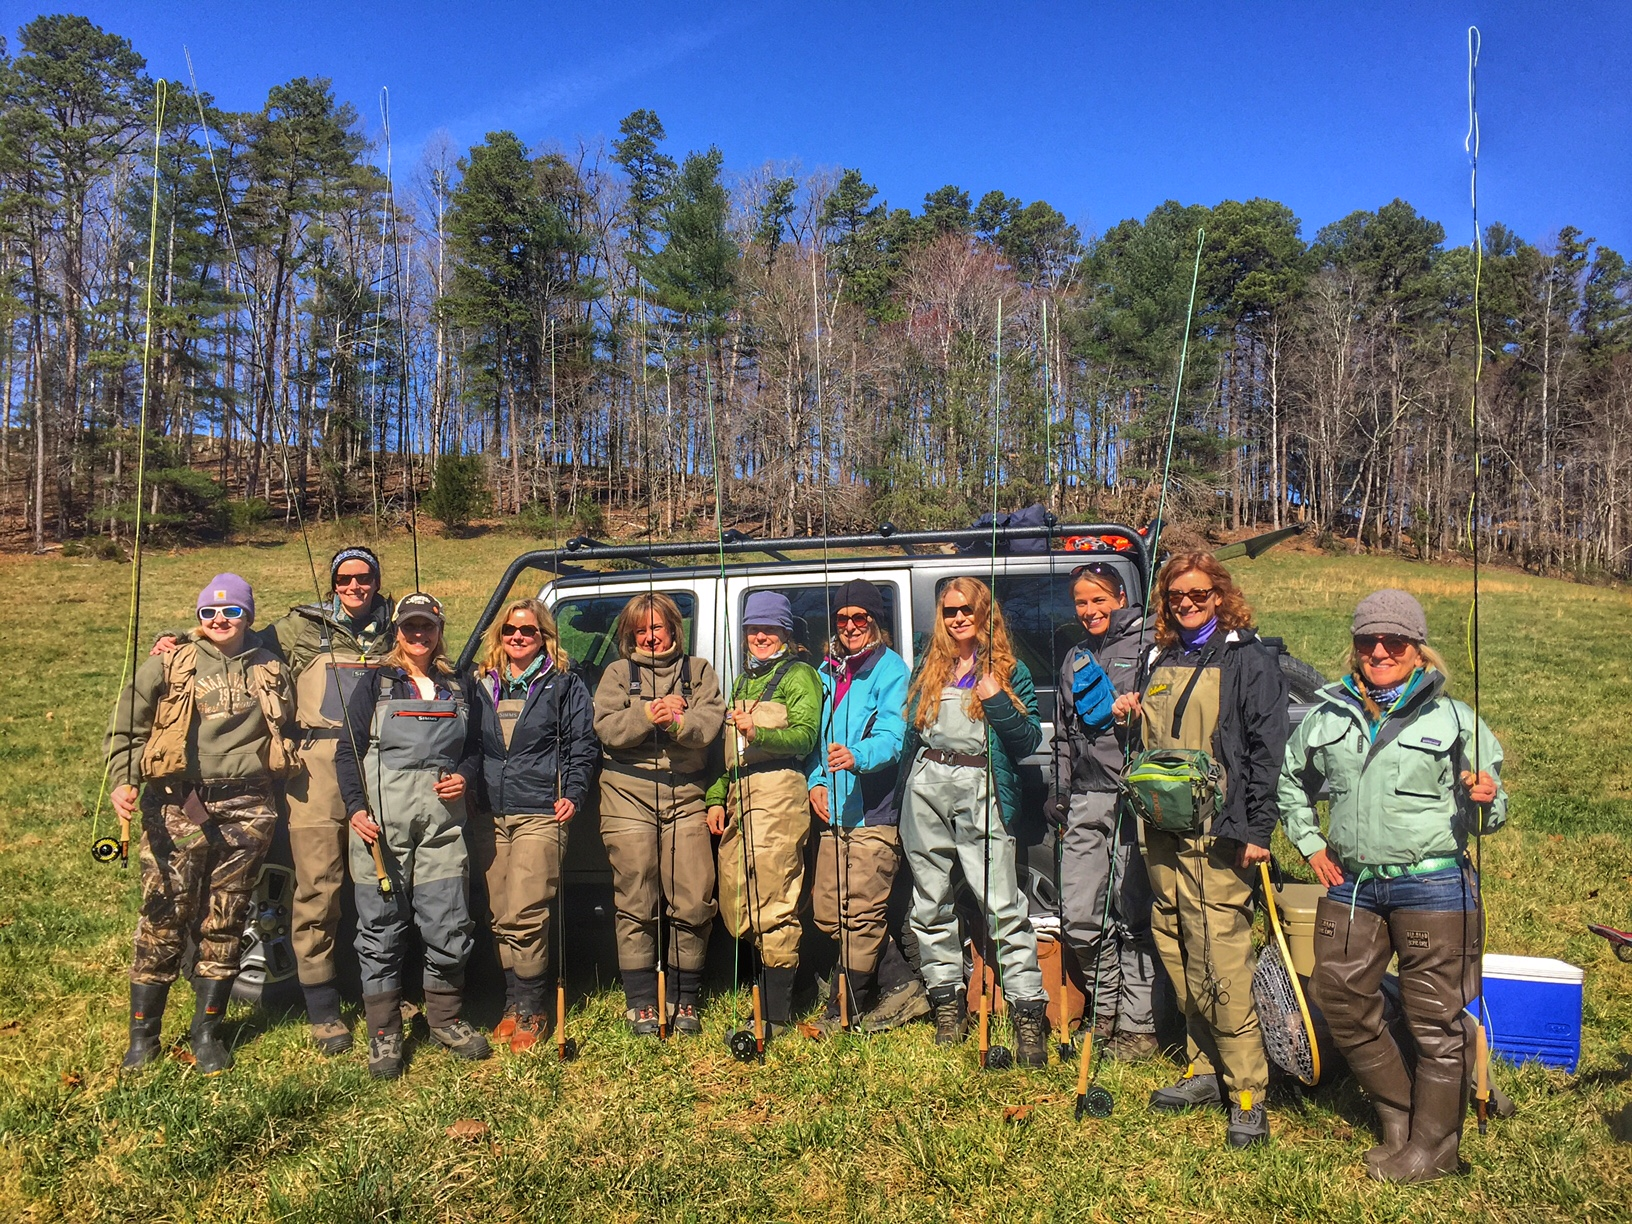 A group of ladies from a fly fishing class